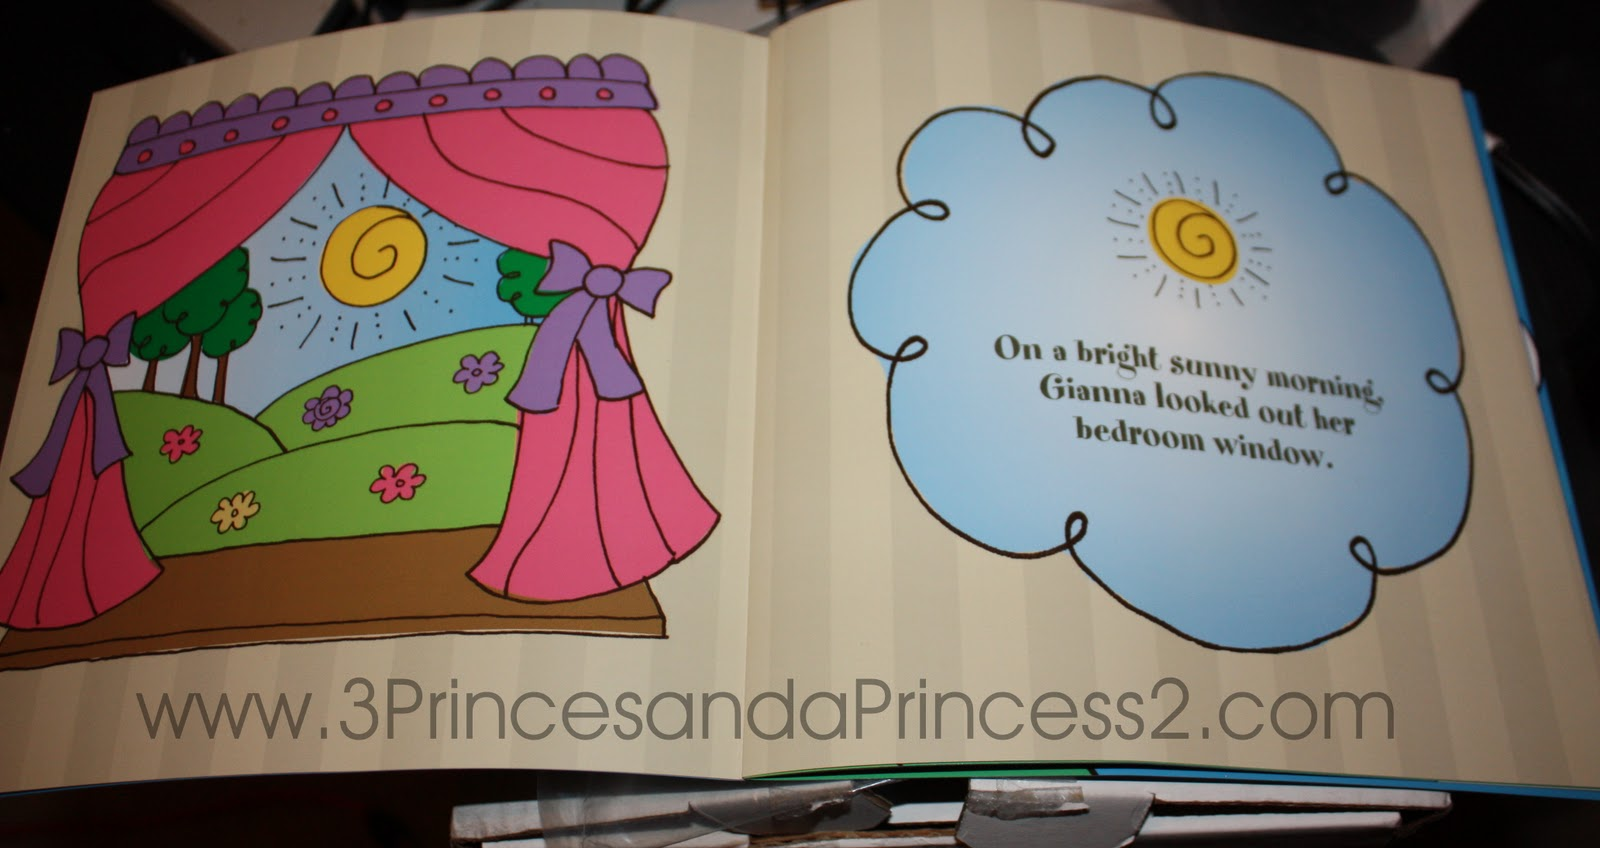 3 princes and a princess 2 santa u0027s list frecklebox